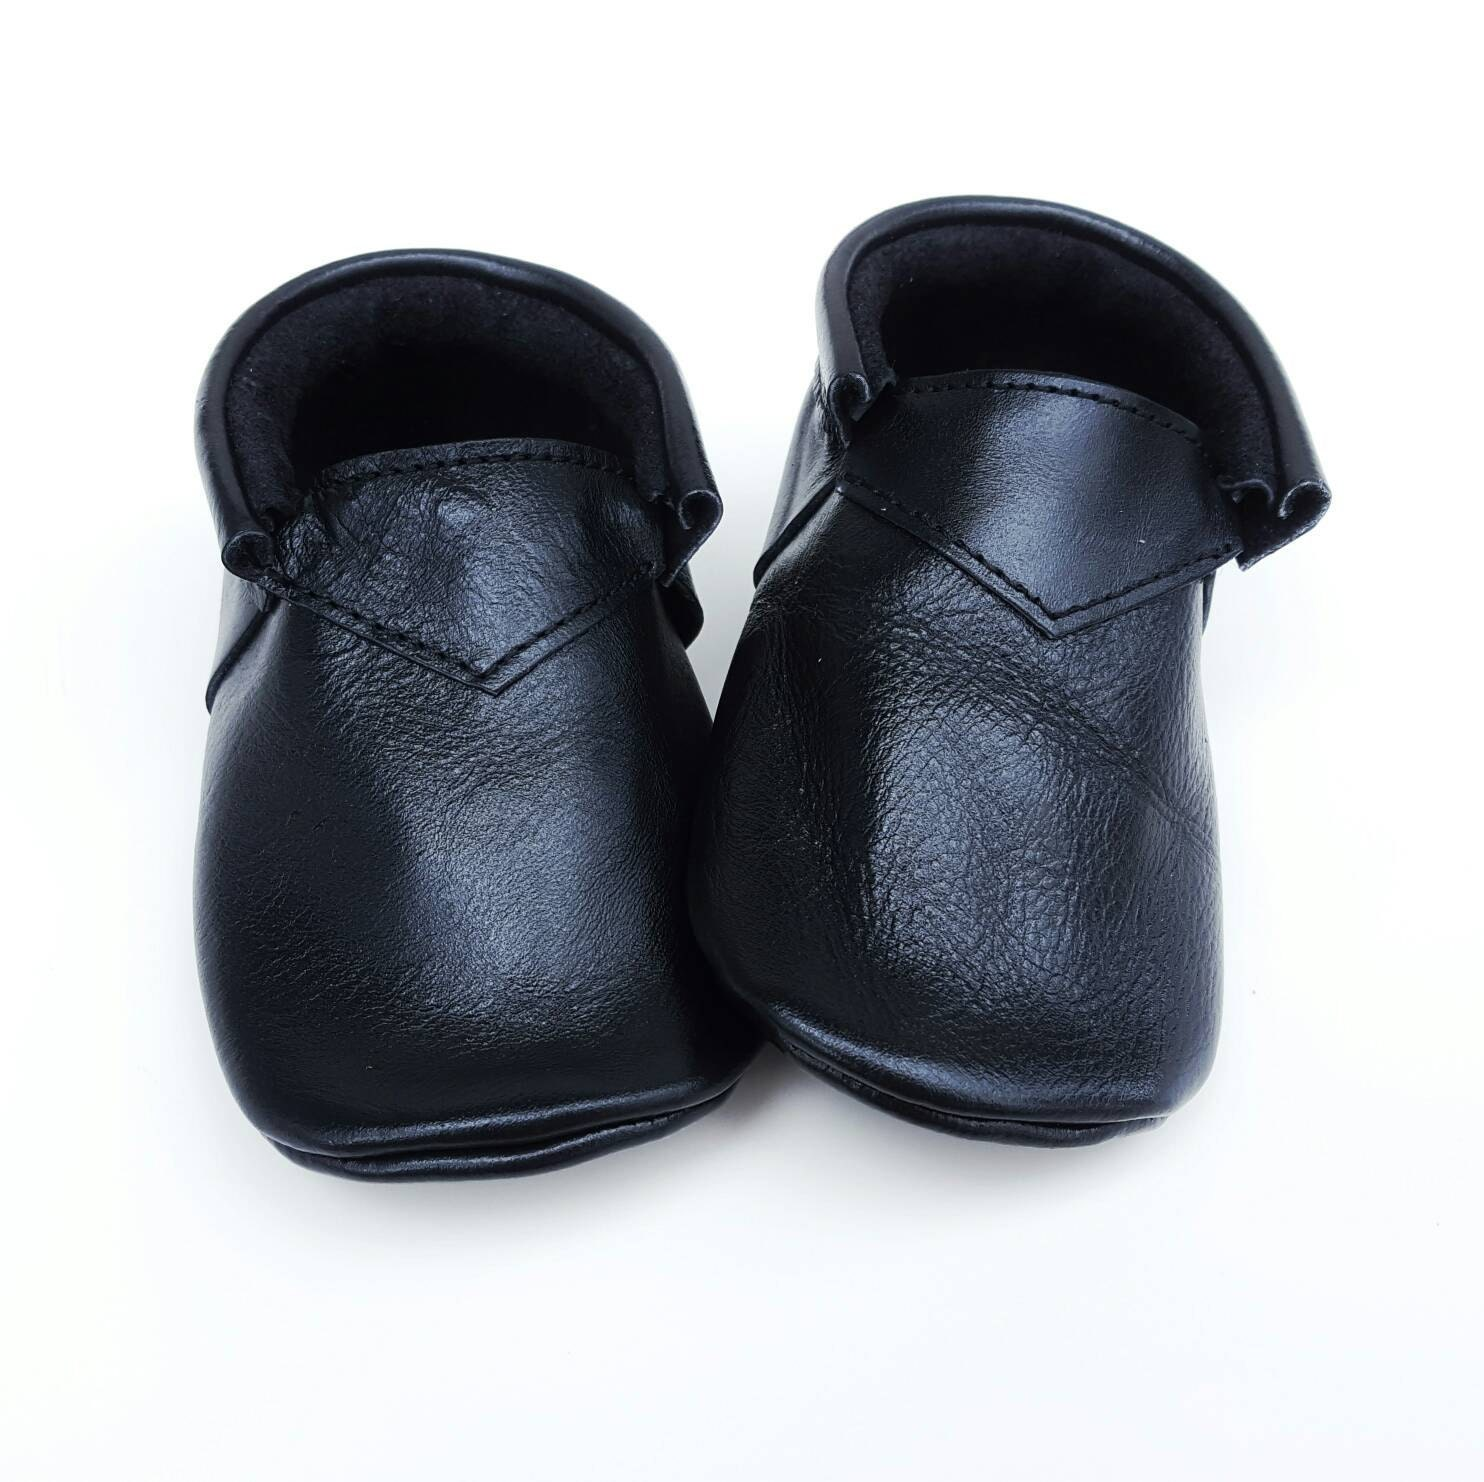 Black boho Loafers - baby shoes - baby moccs - moccs - moccasins ... a33279ca42a